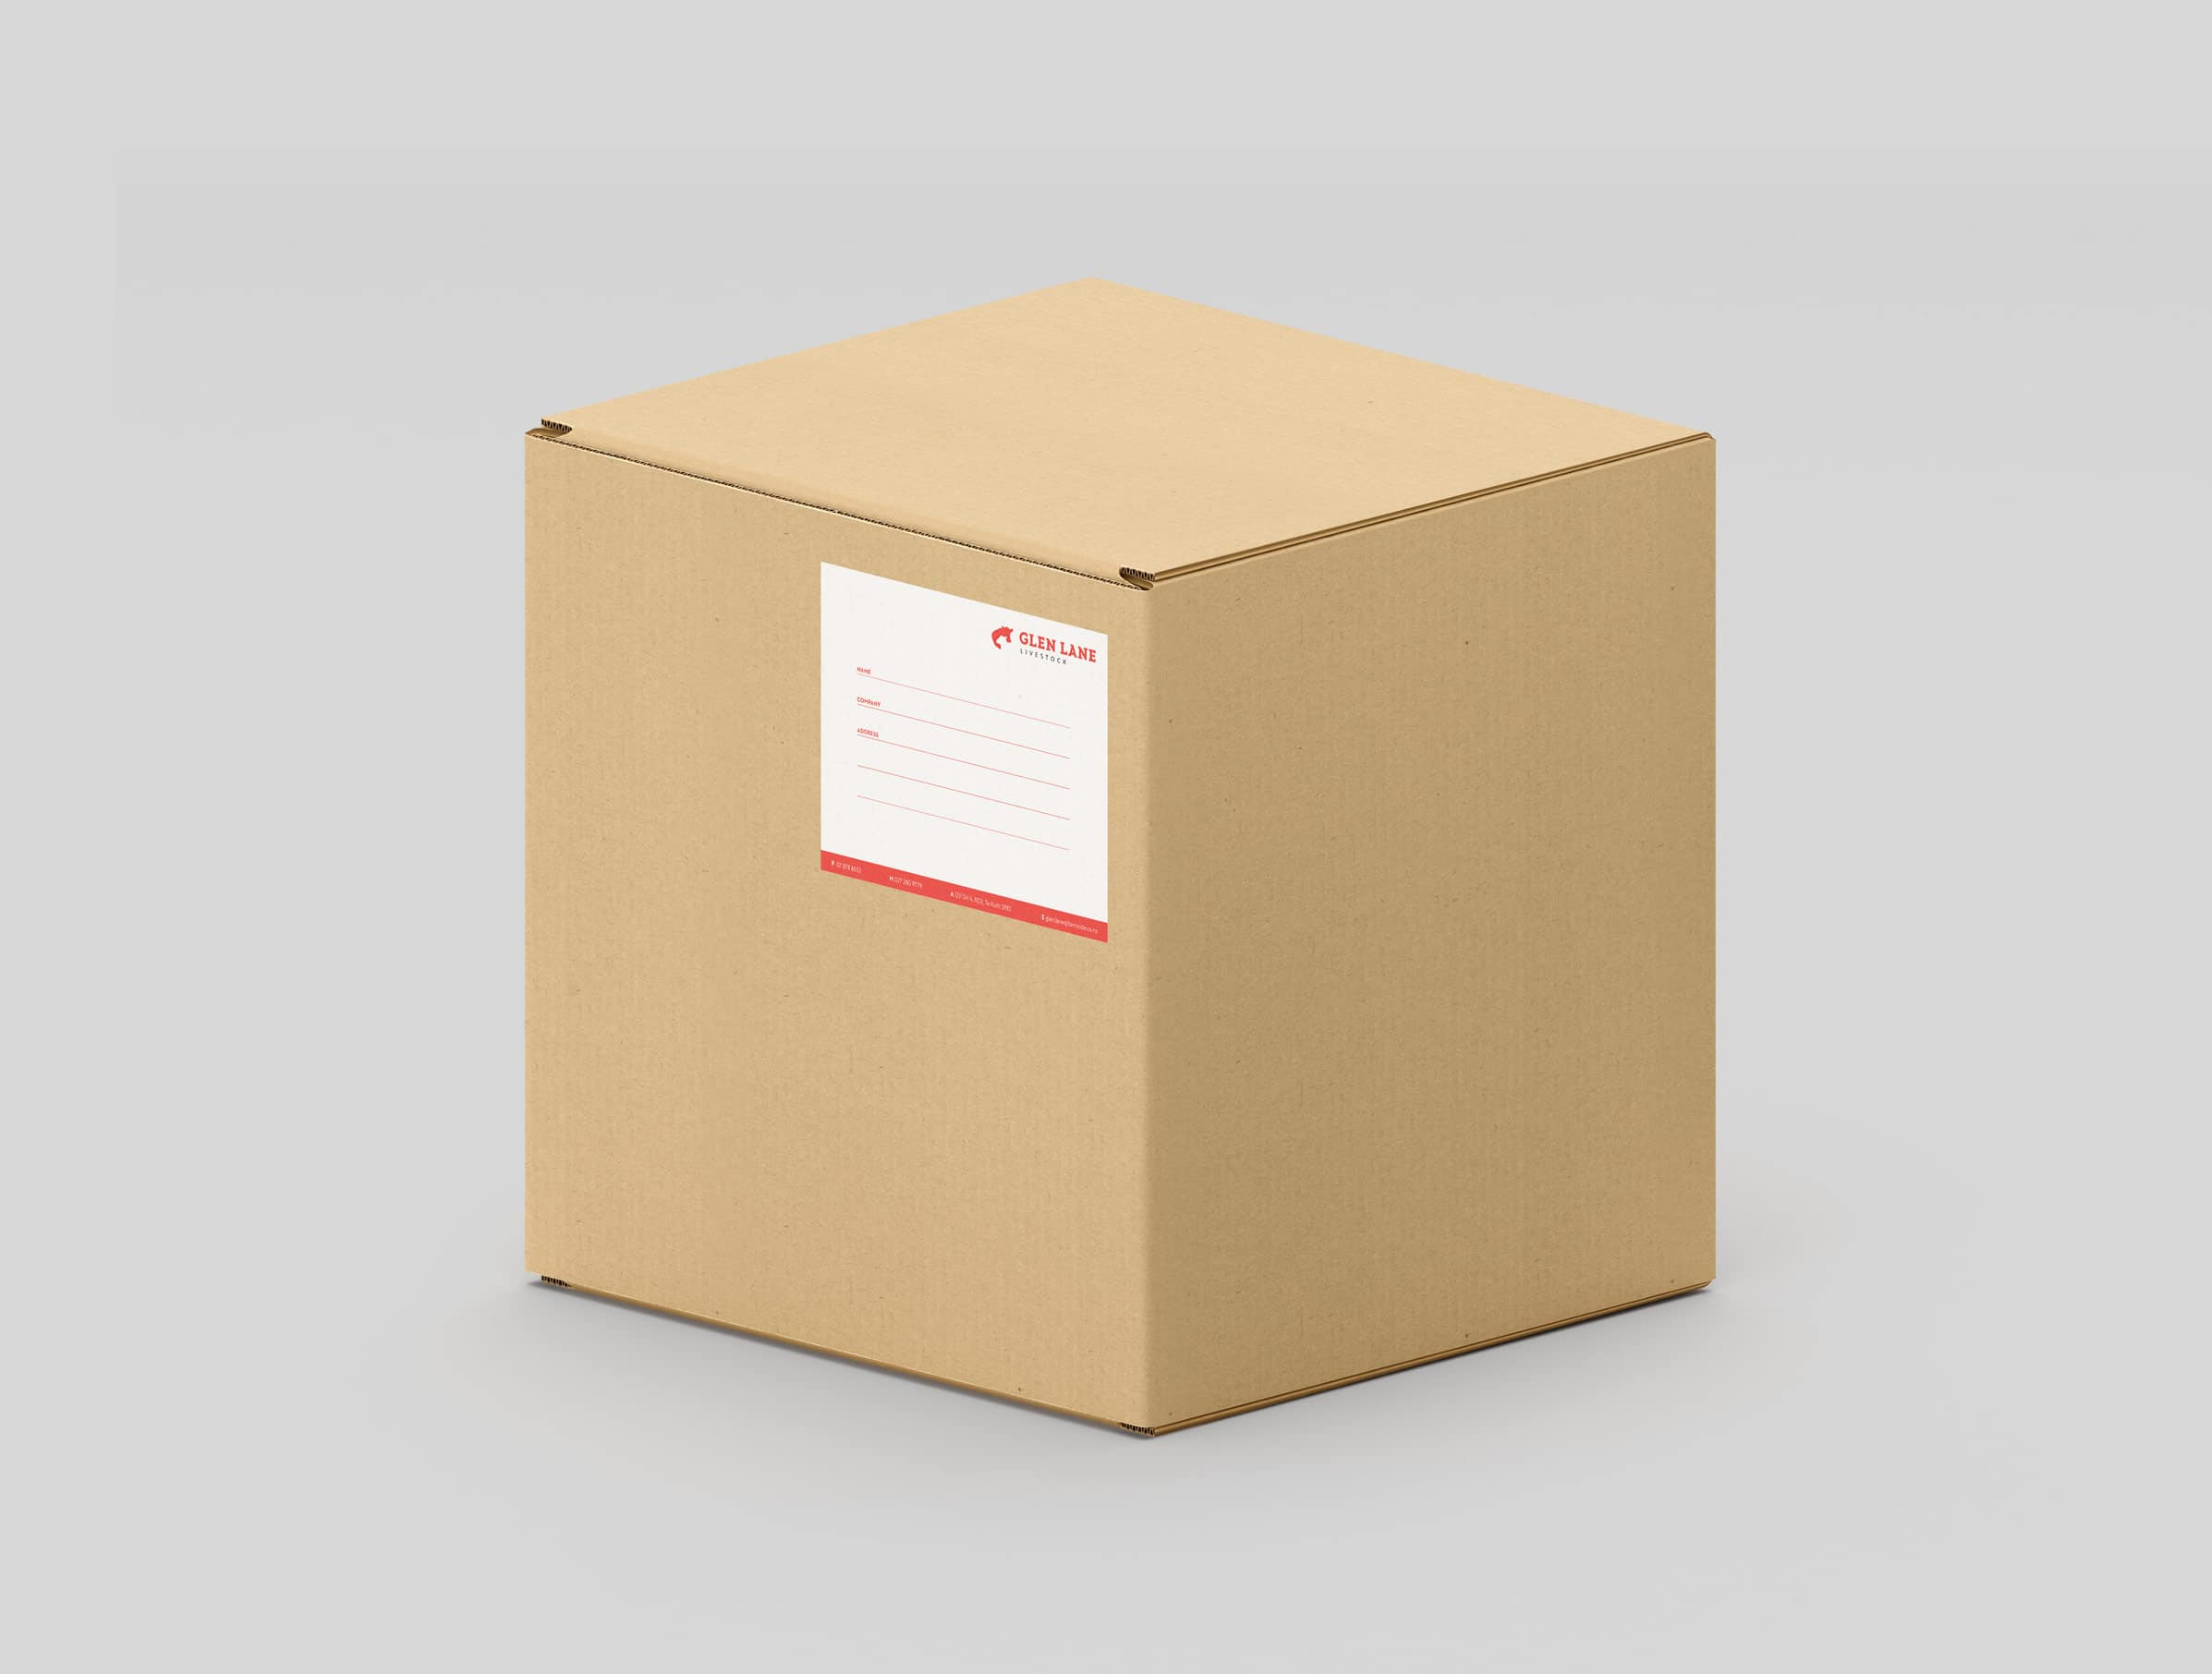 Custom made white and red address label on cardboard box